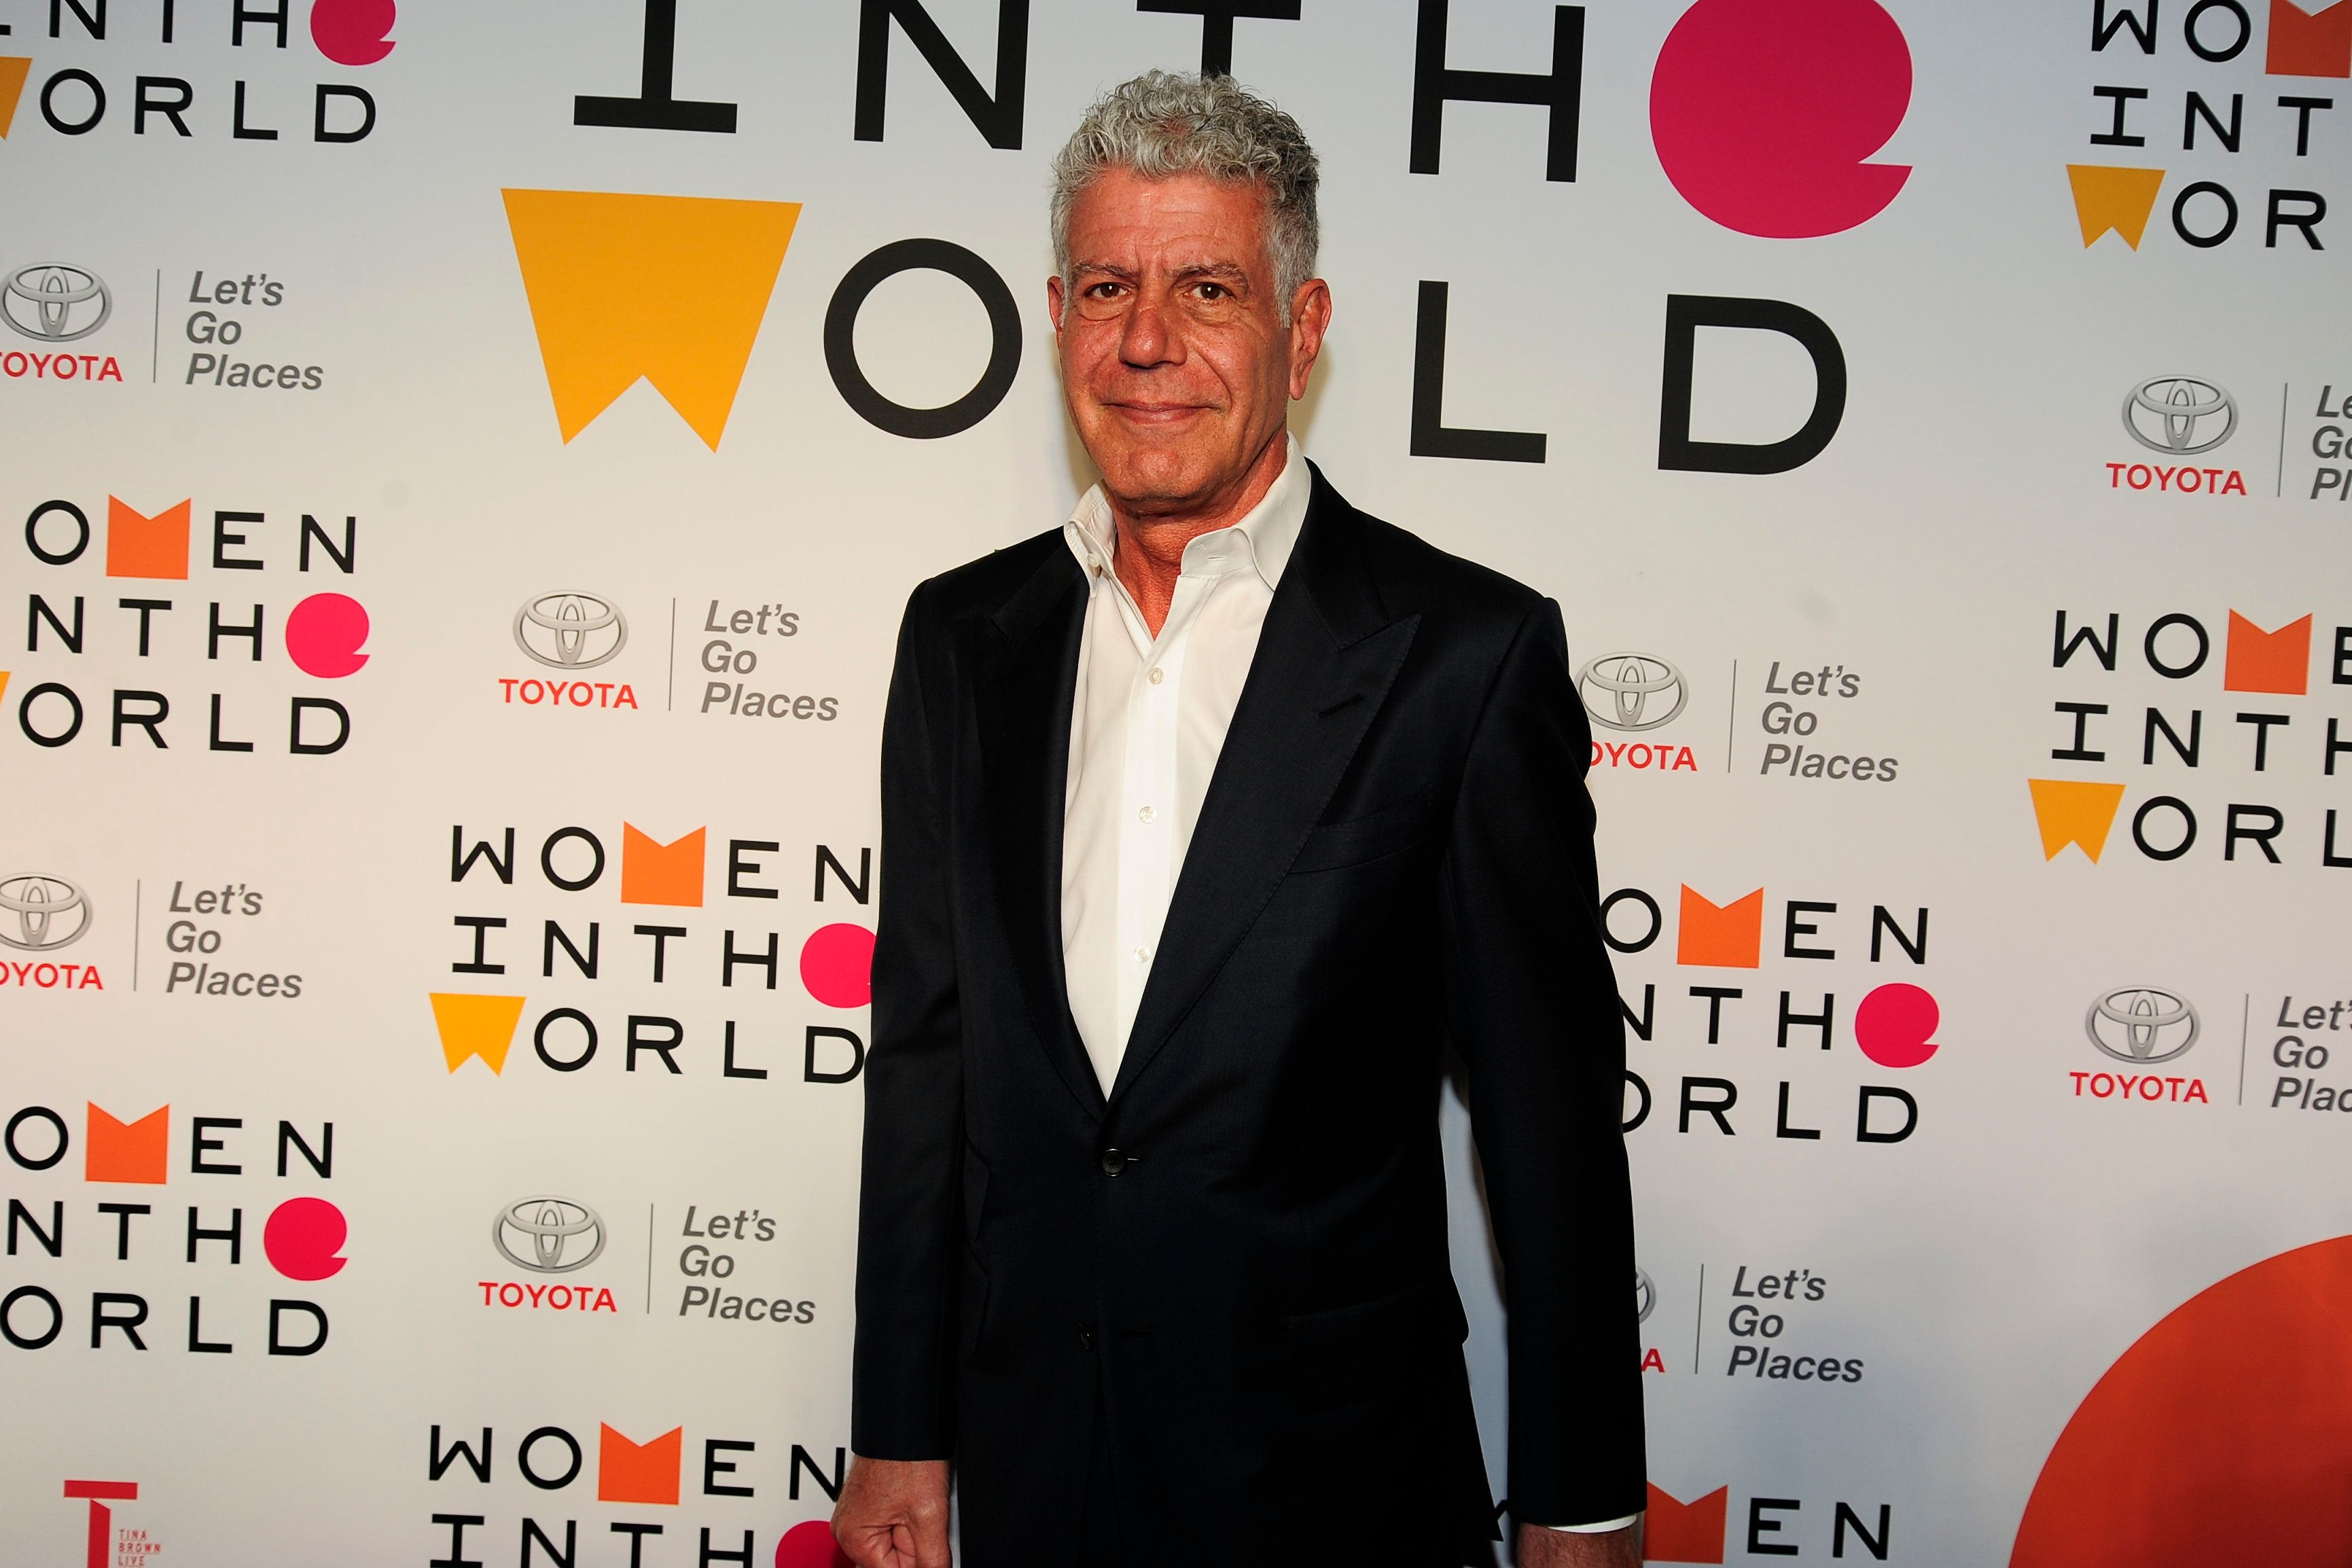 Anthony Bourdain, 'Parts Unknown' Host And Chef, Dead At